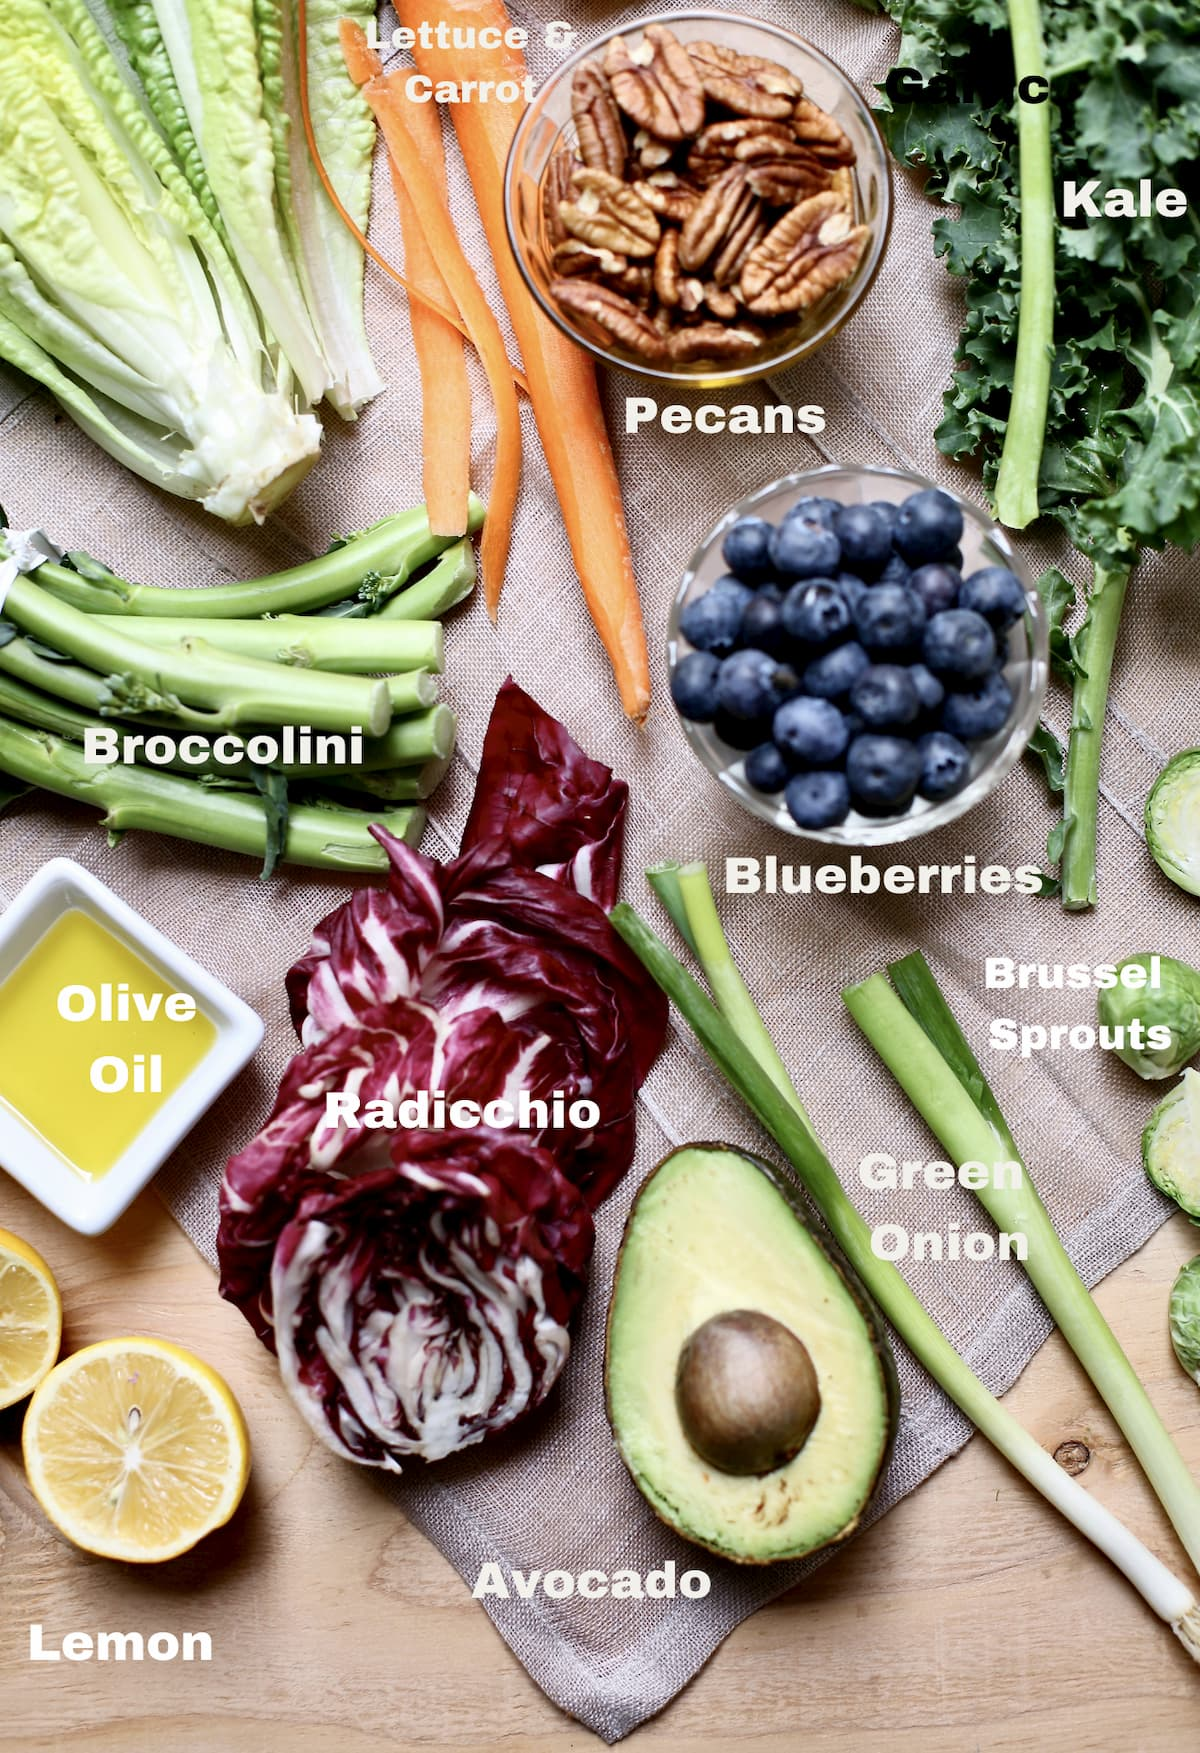 vegetables on a table with text overlay saying what they are: blueberries, brocolini, olive oil, avocado, green onion, pecans and more.